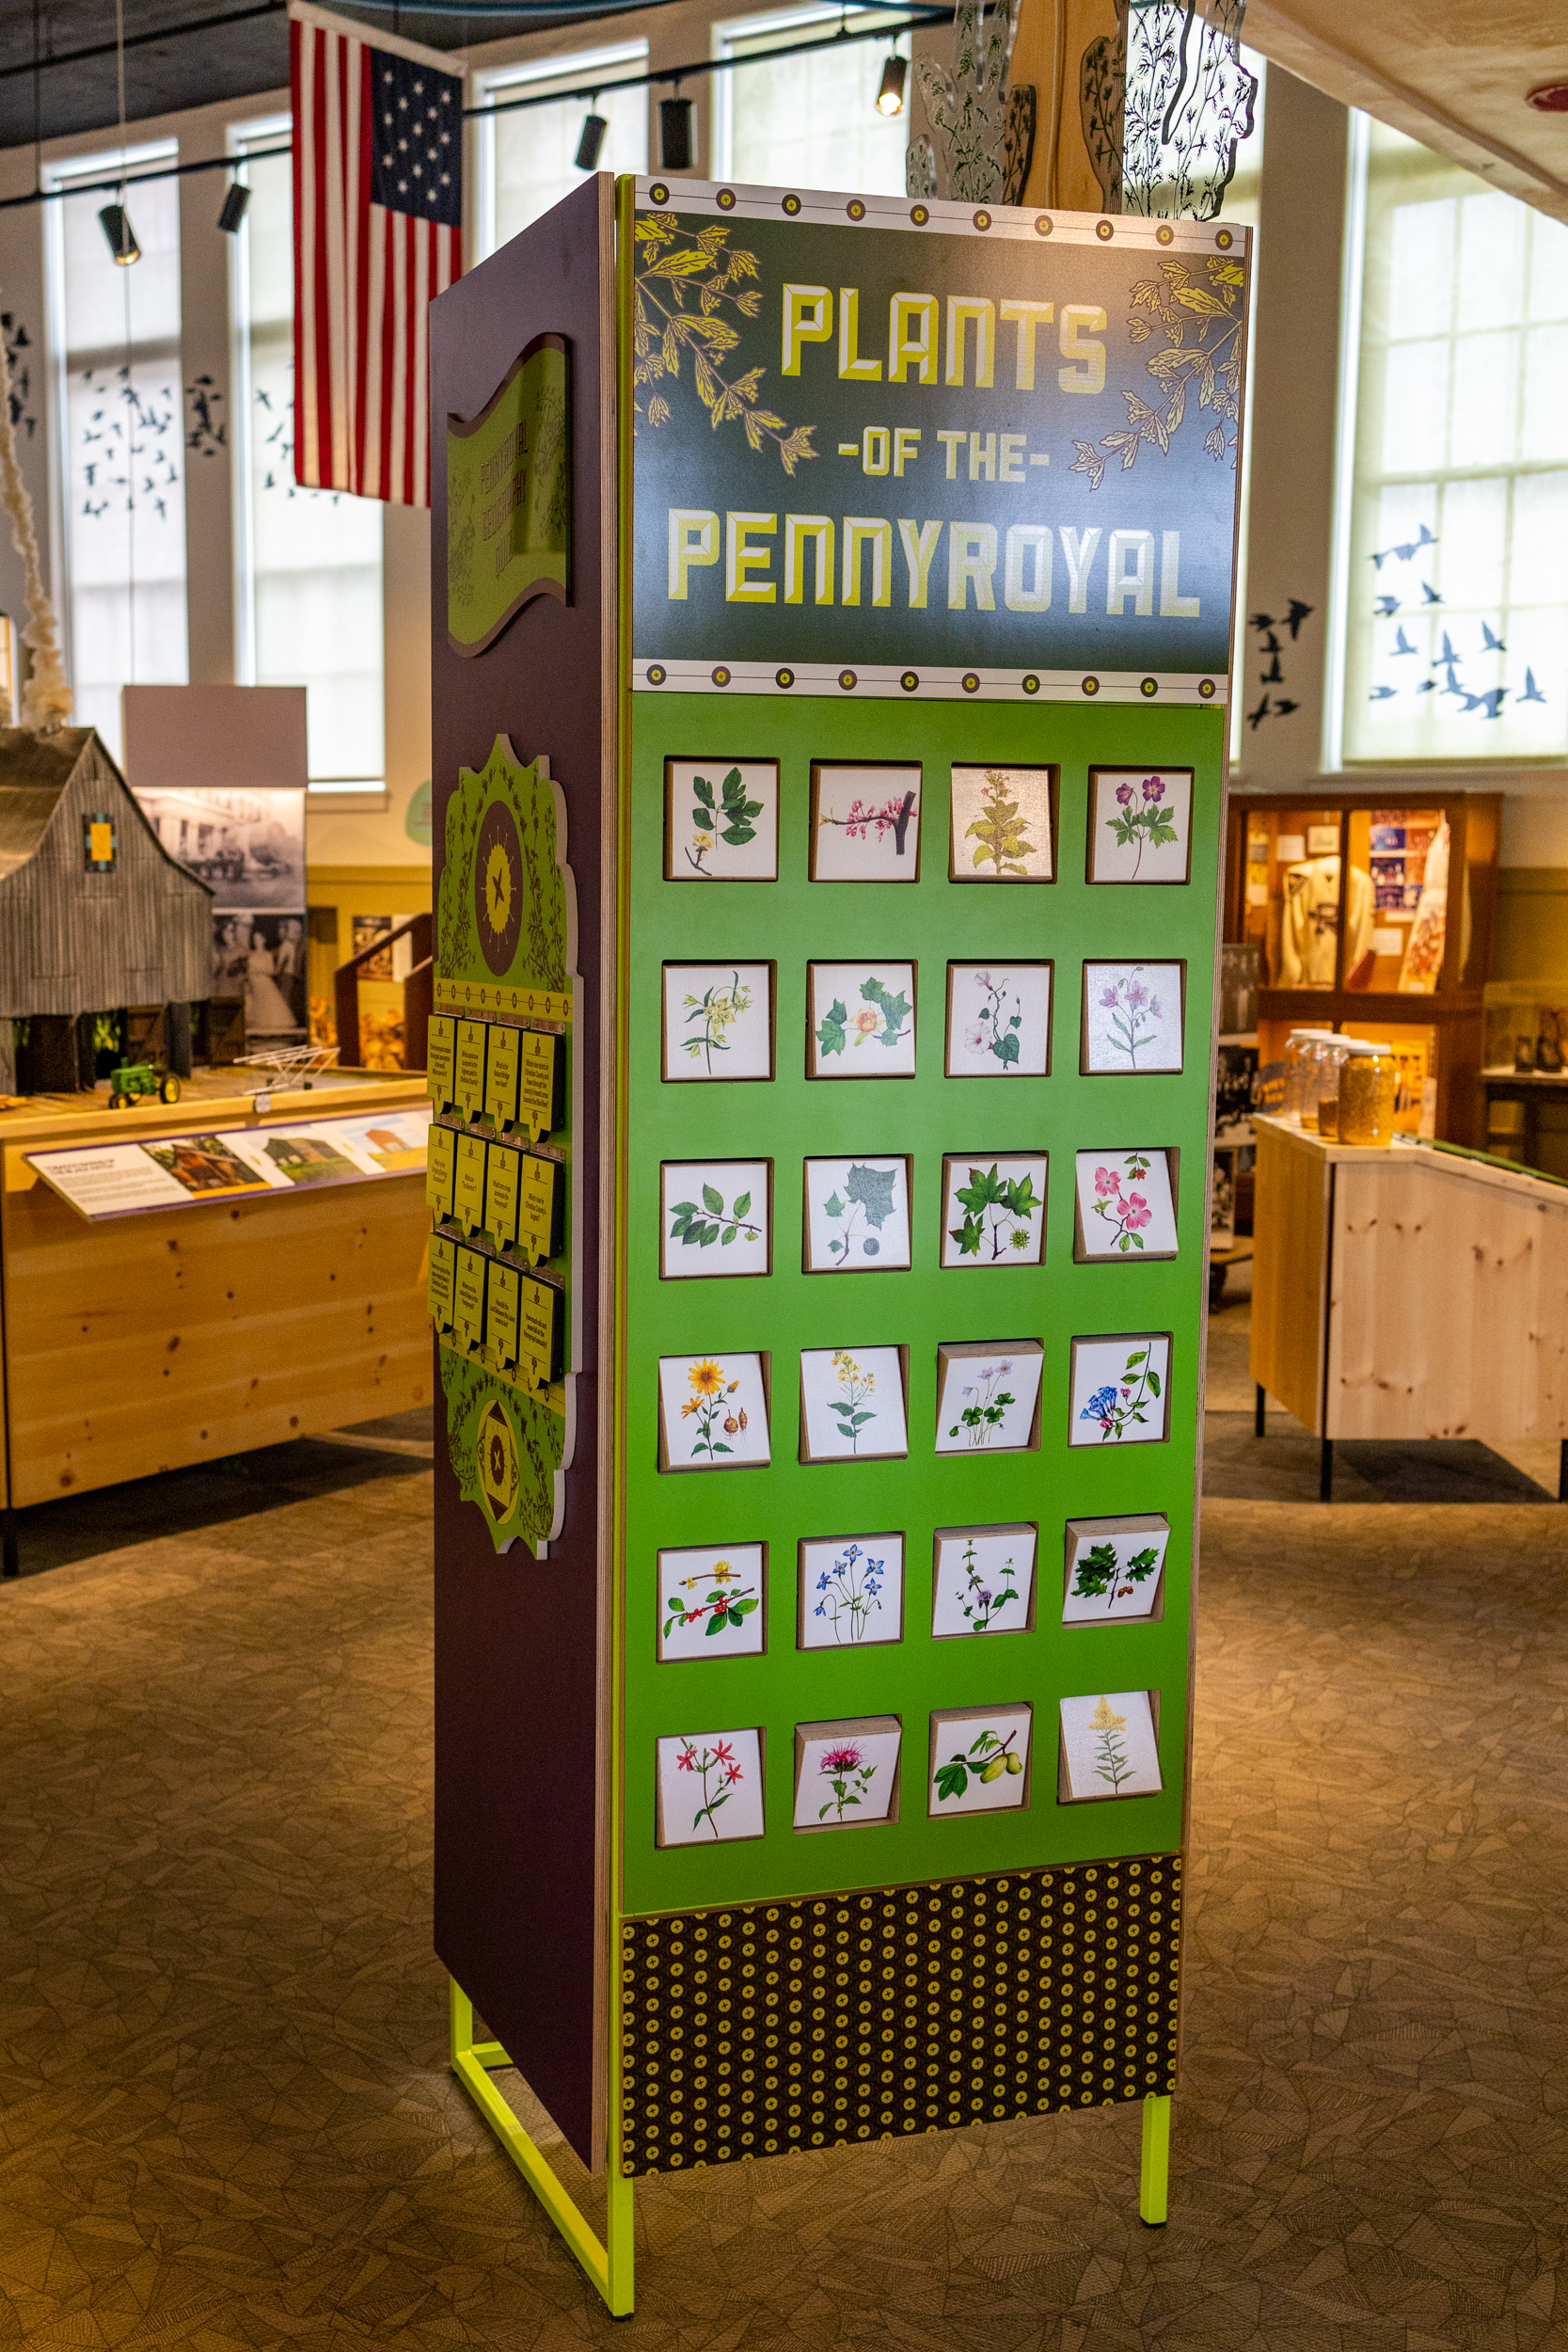 Interactive spin blocks depict native plants of the Pennyroyal area for visitors to interpret.